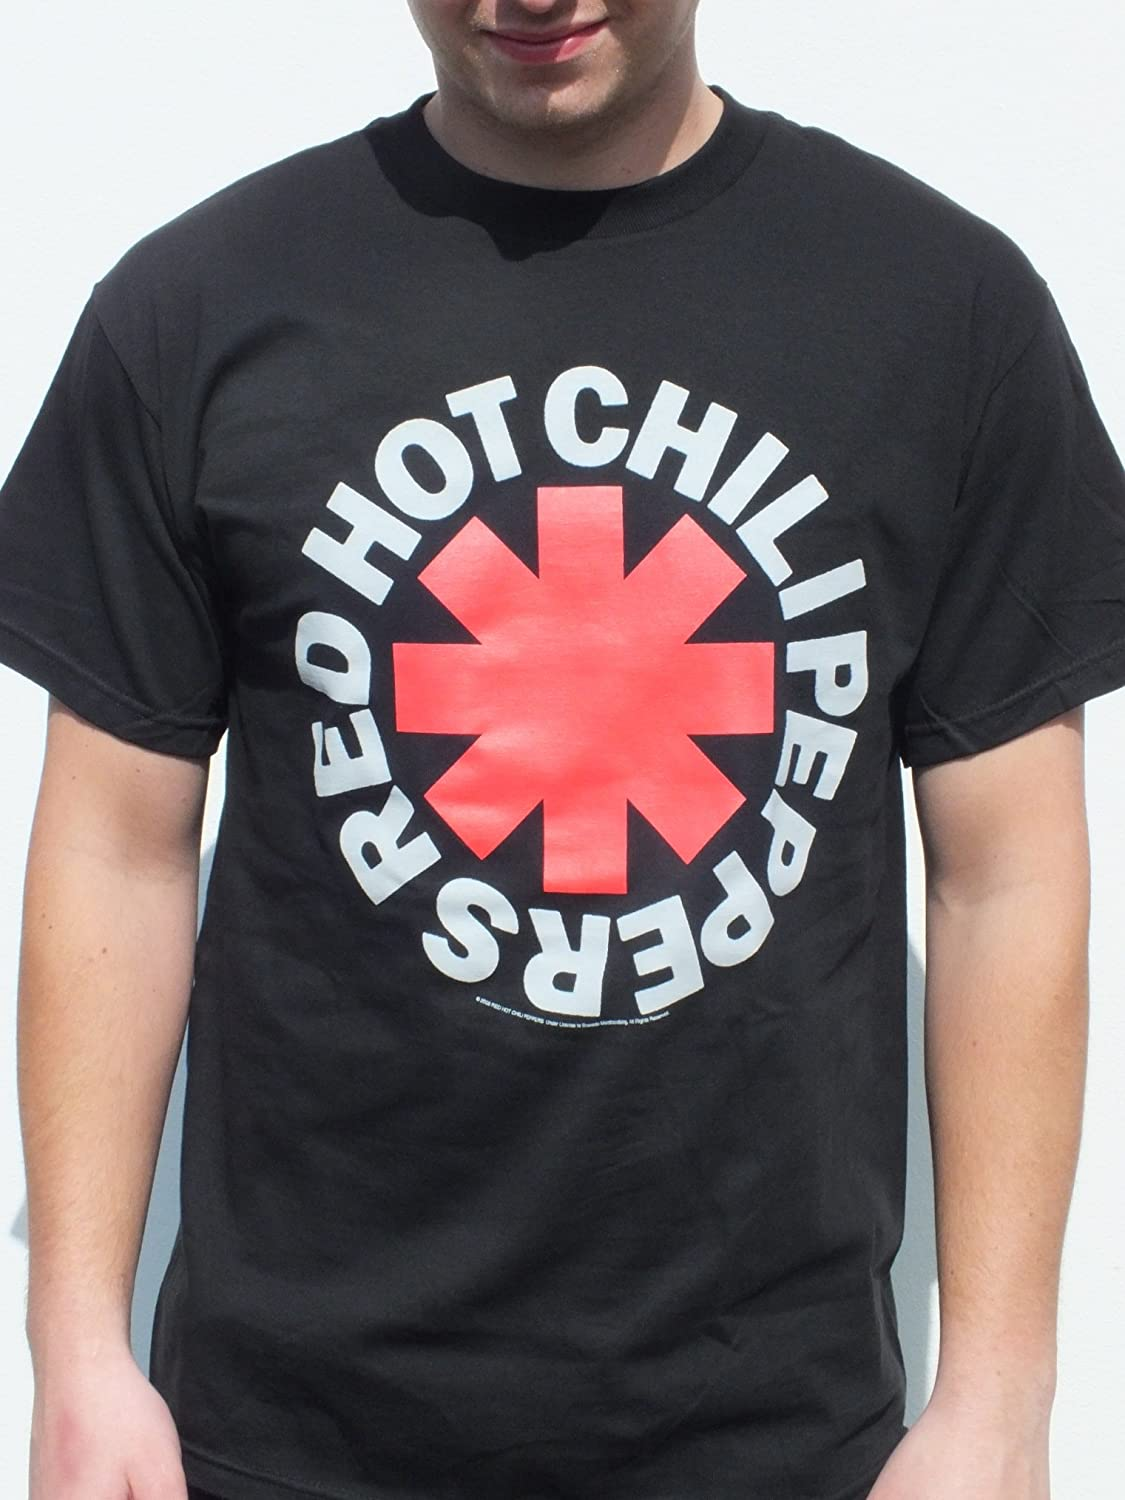 Camiseta oficial de Red Hot Chili Peppers, talla XL